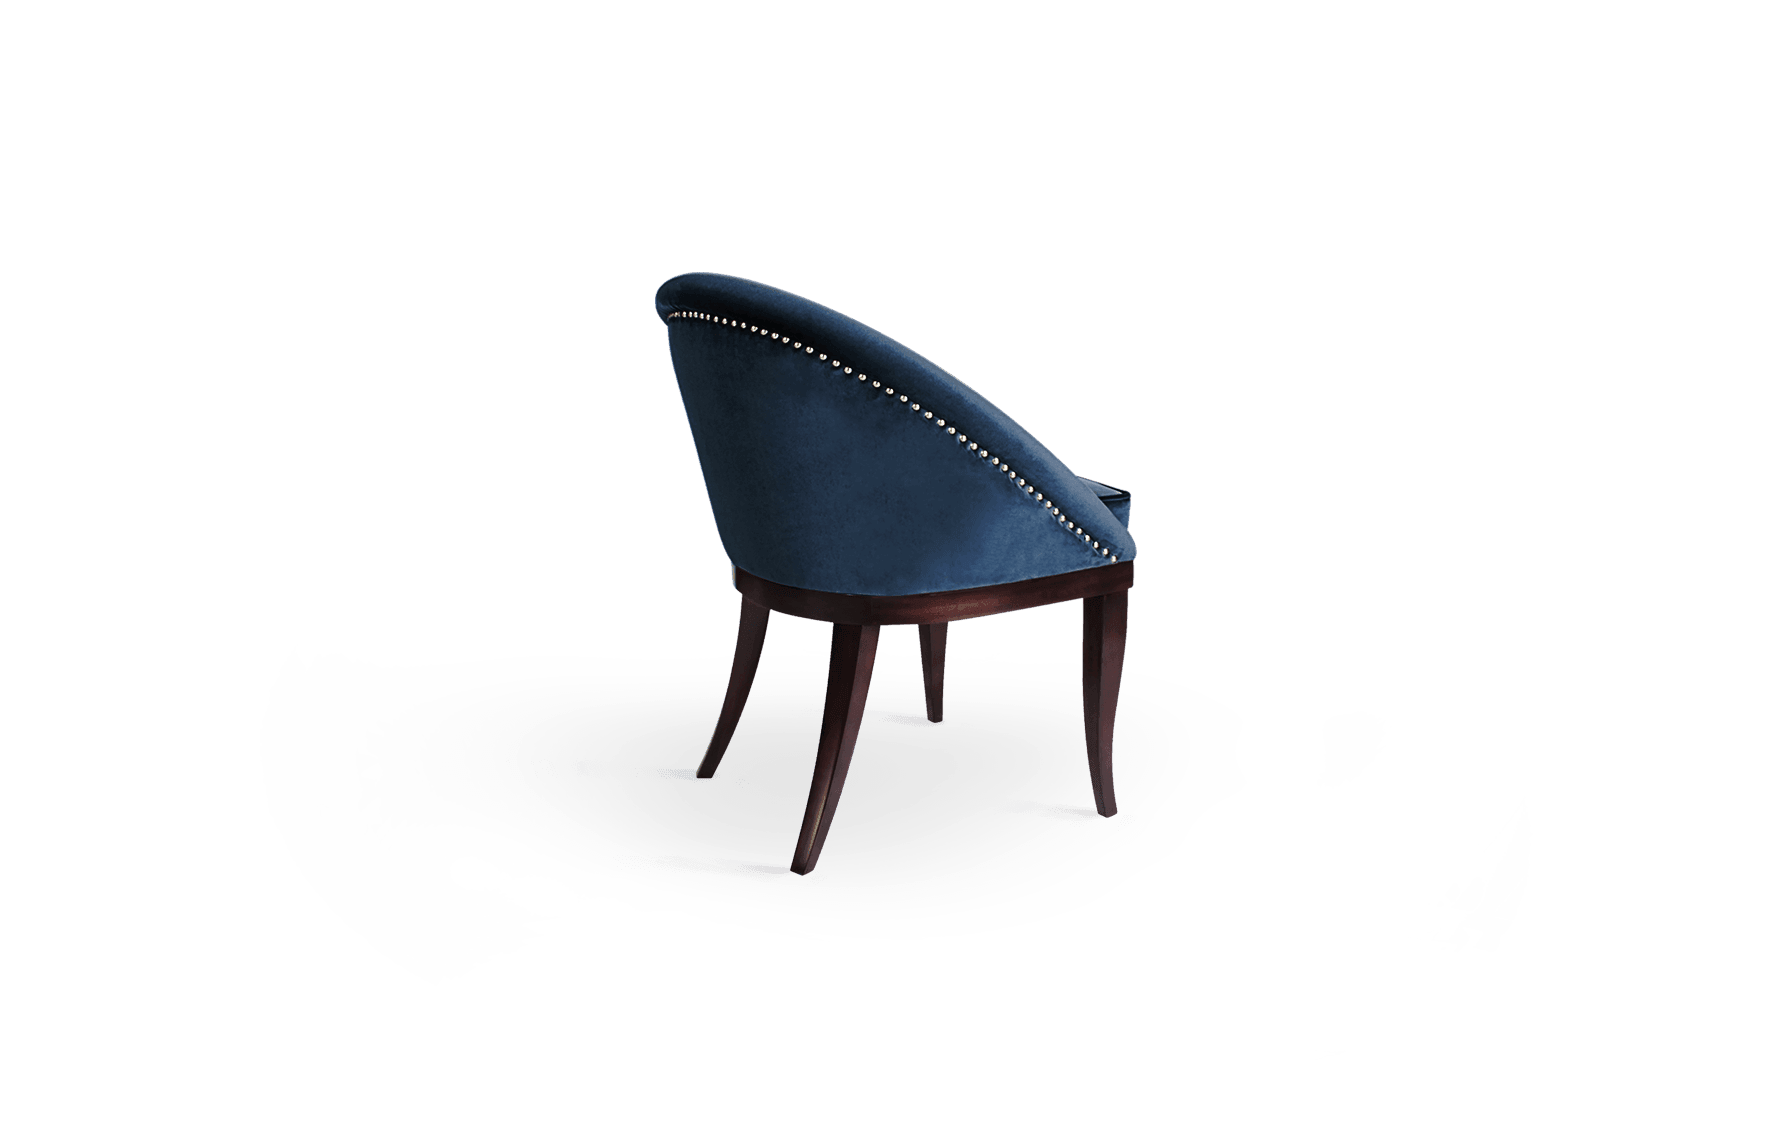 Kim Mid-Century Modern Dining Chair in blue cotton velvet